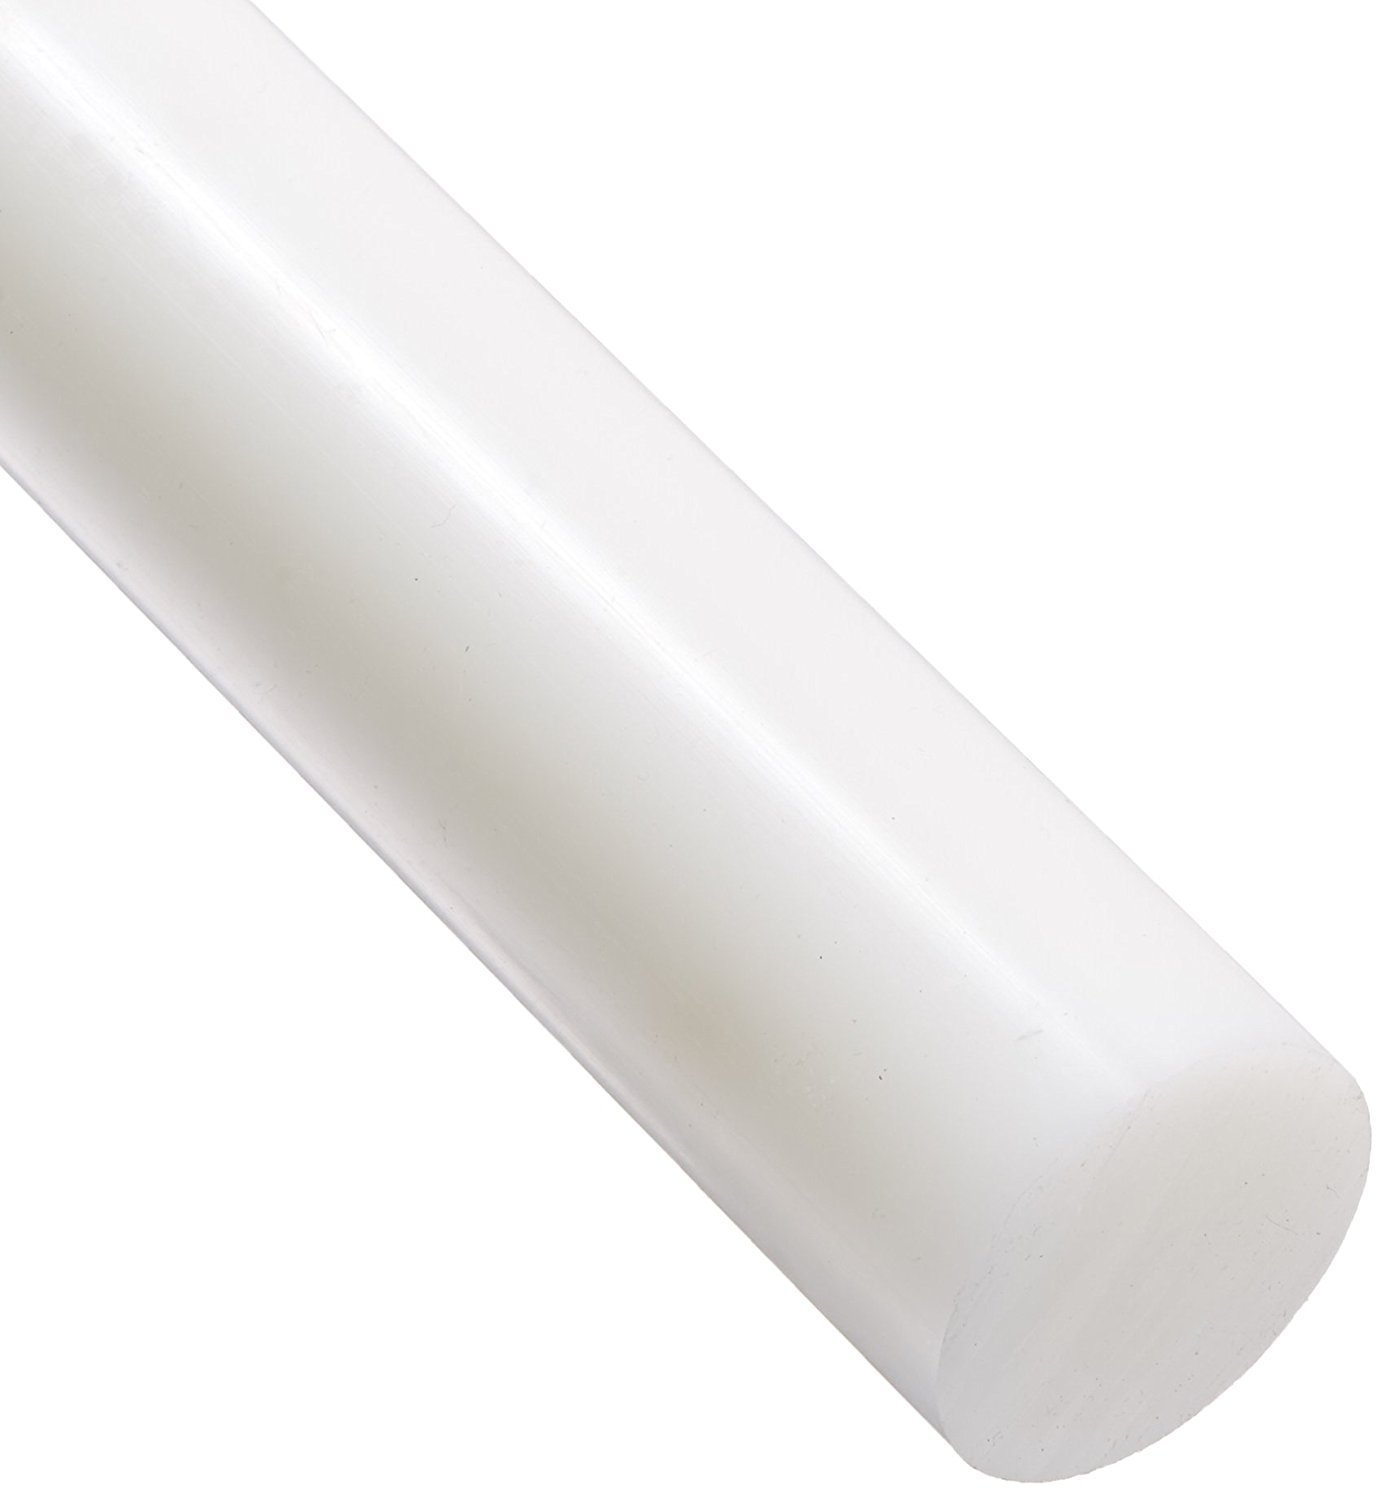 HDPE High Density Polyethylene Round Rod, Translucent White 20mm Diameter x 300mm Long Grade A PE 500 J&A Racing